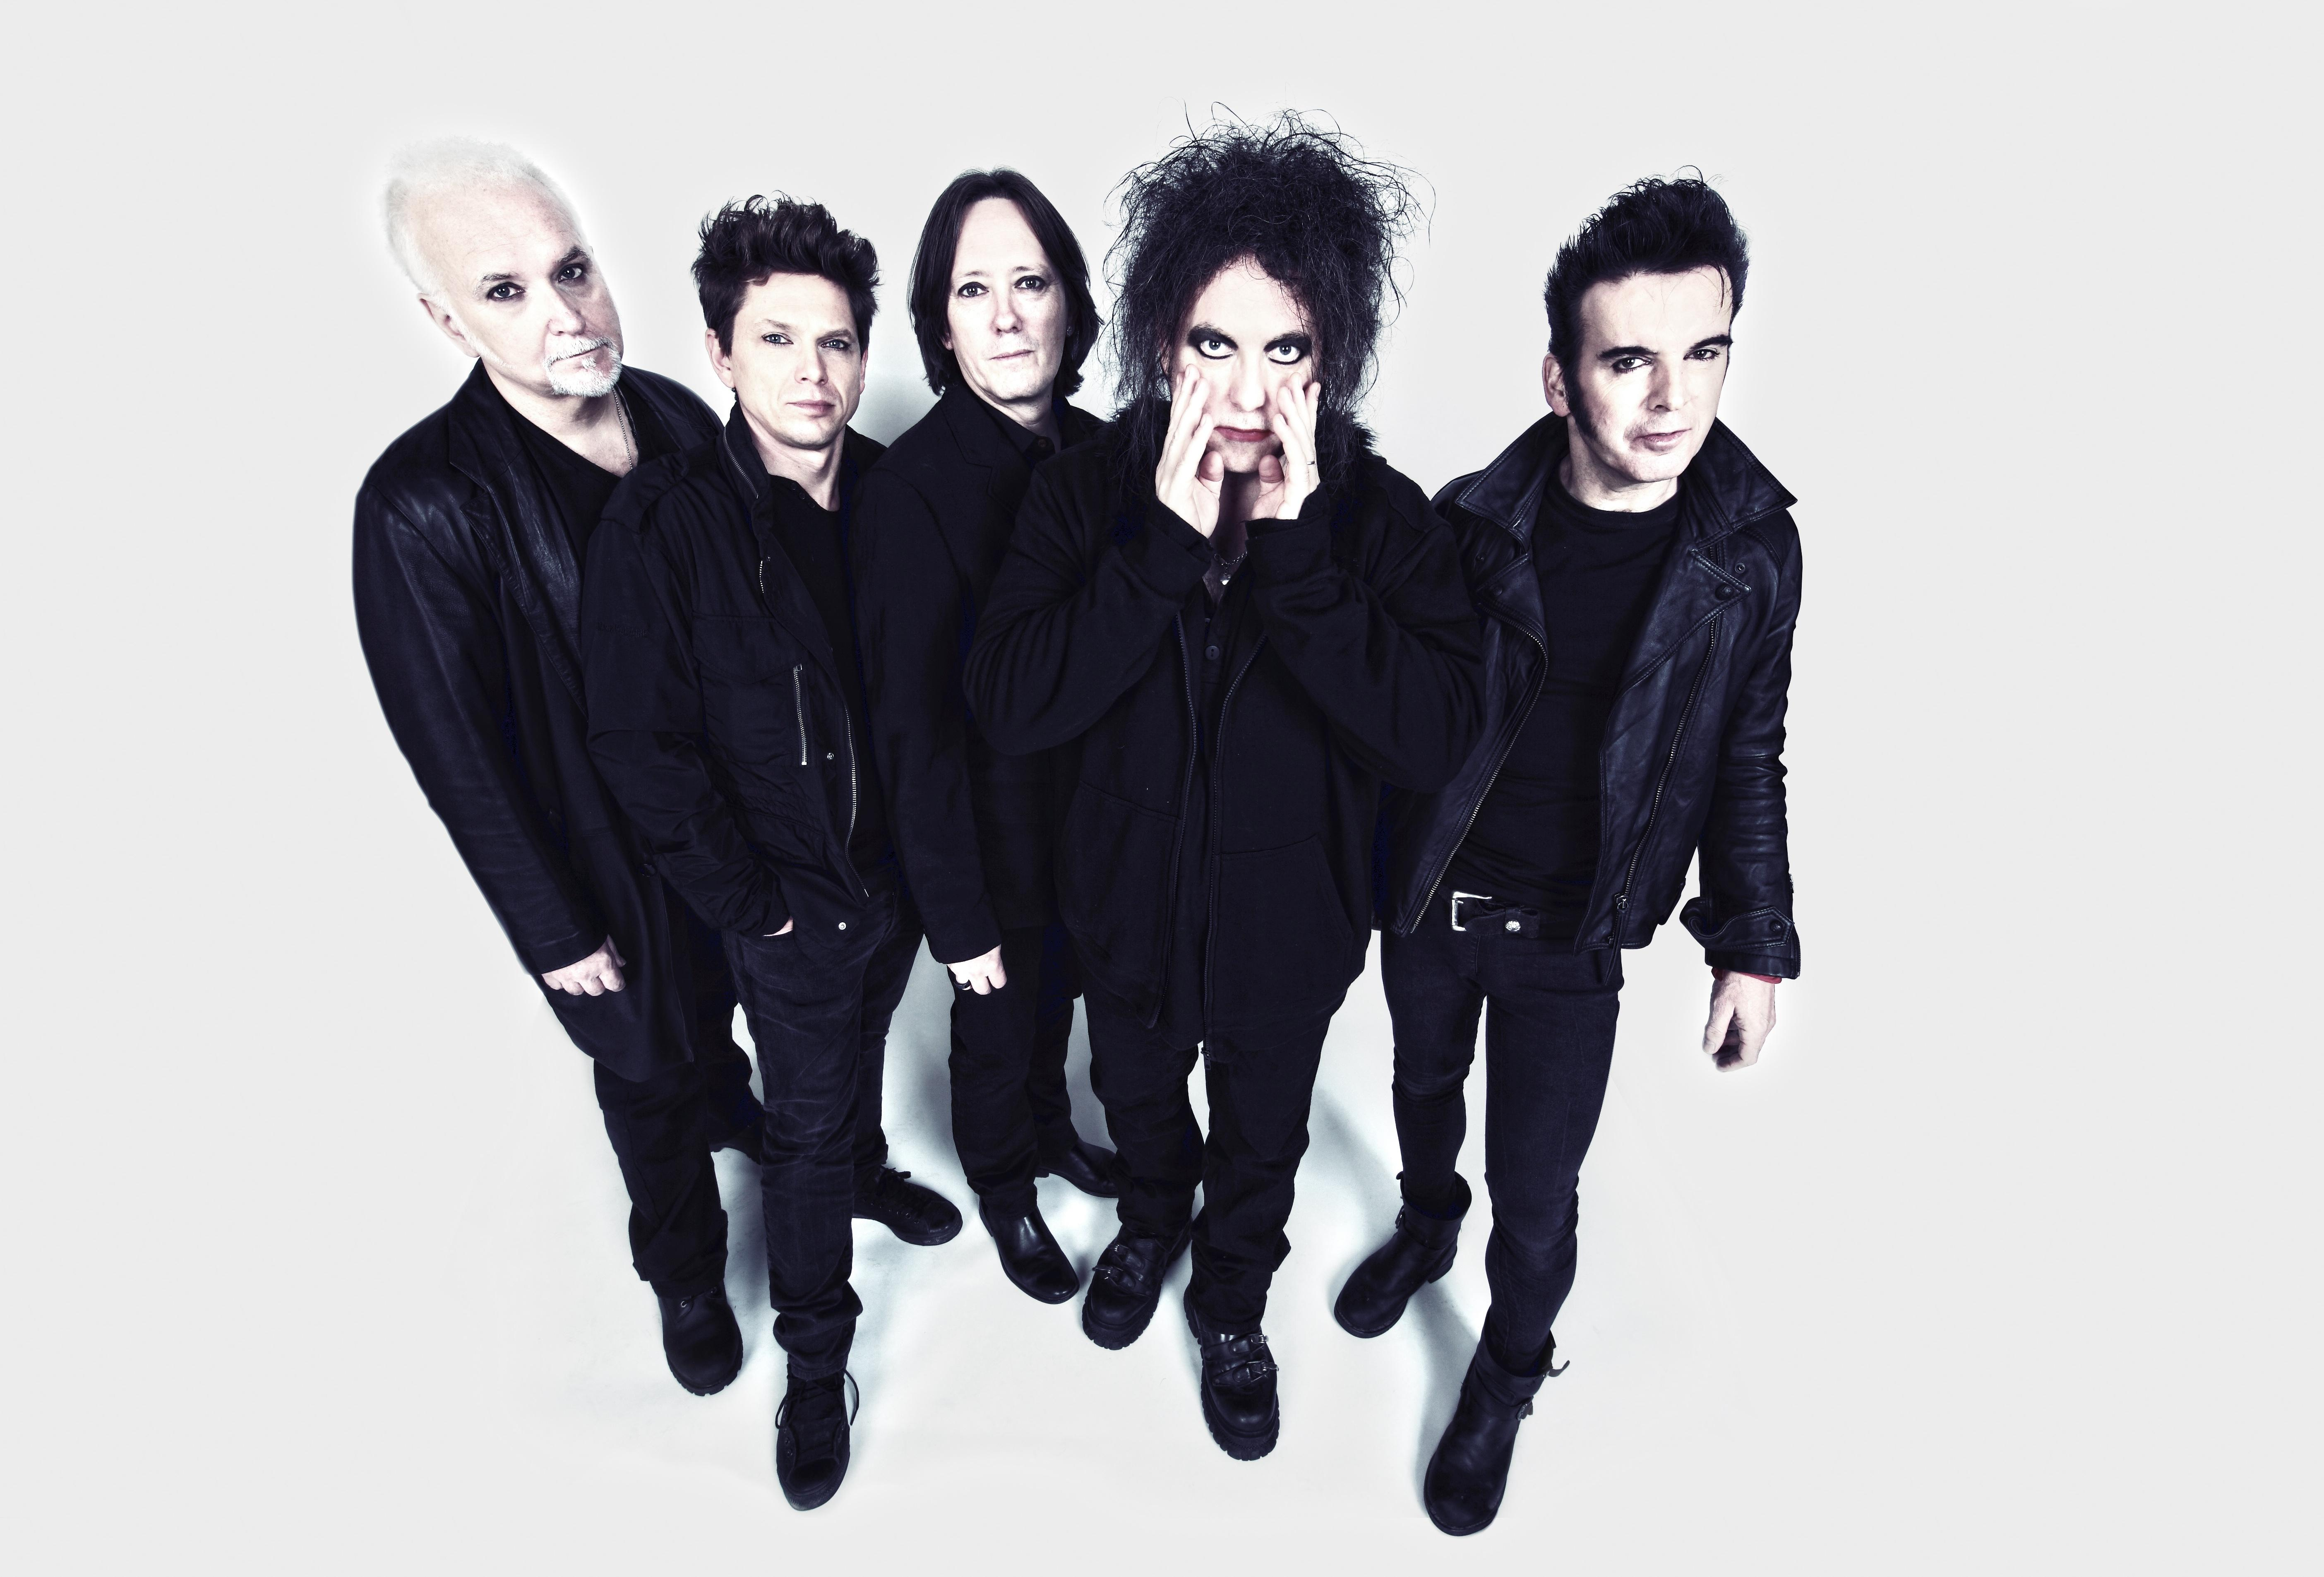 The Cure: Disintegration 30th anniversary shows to debut at Sydney Opera House